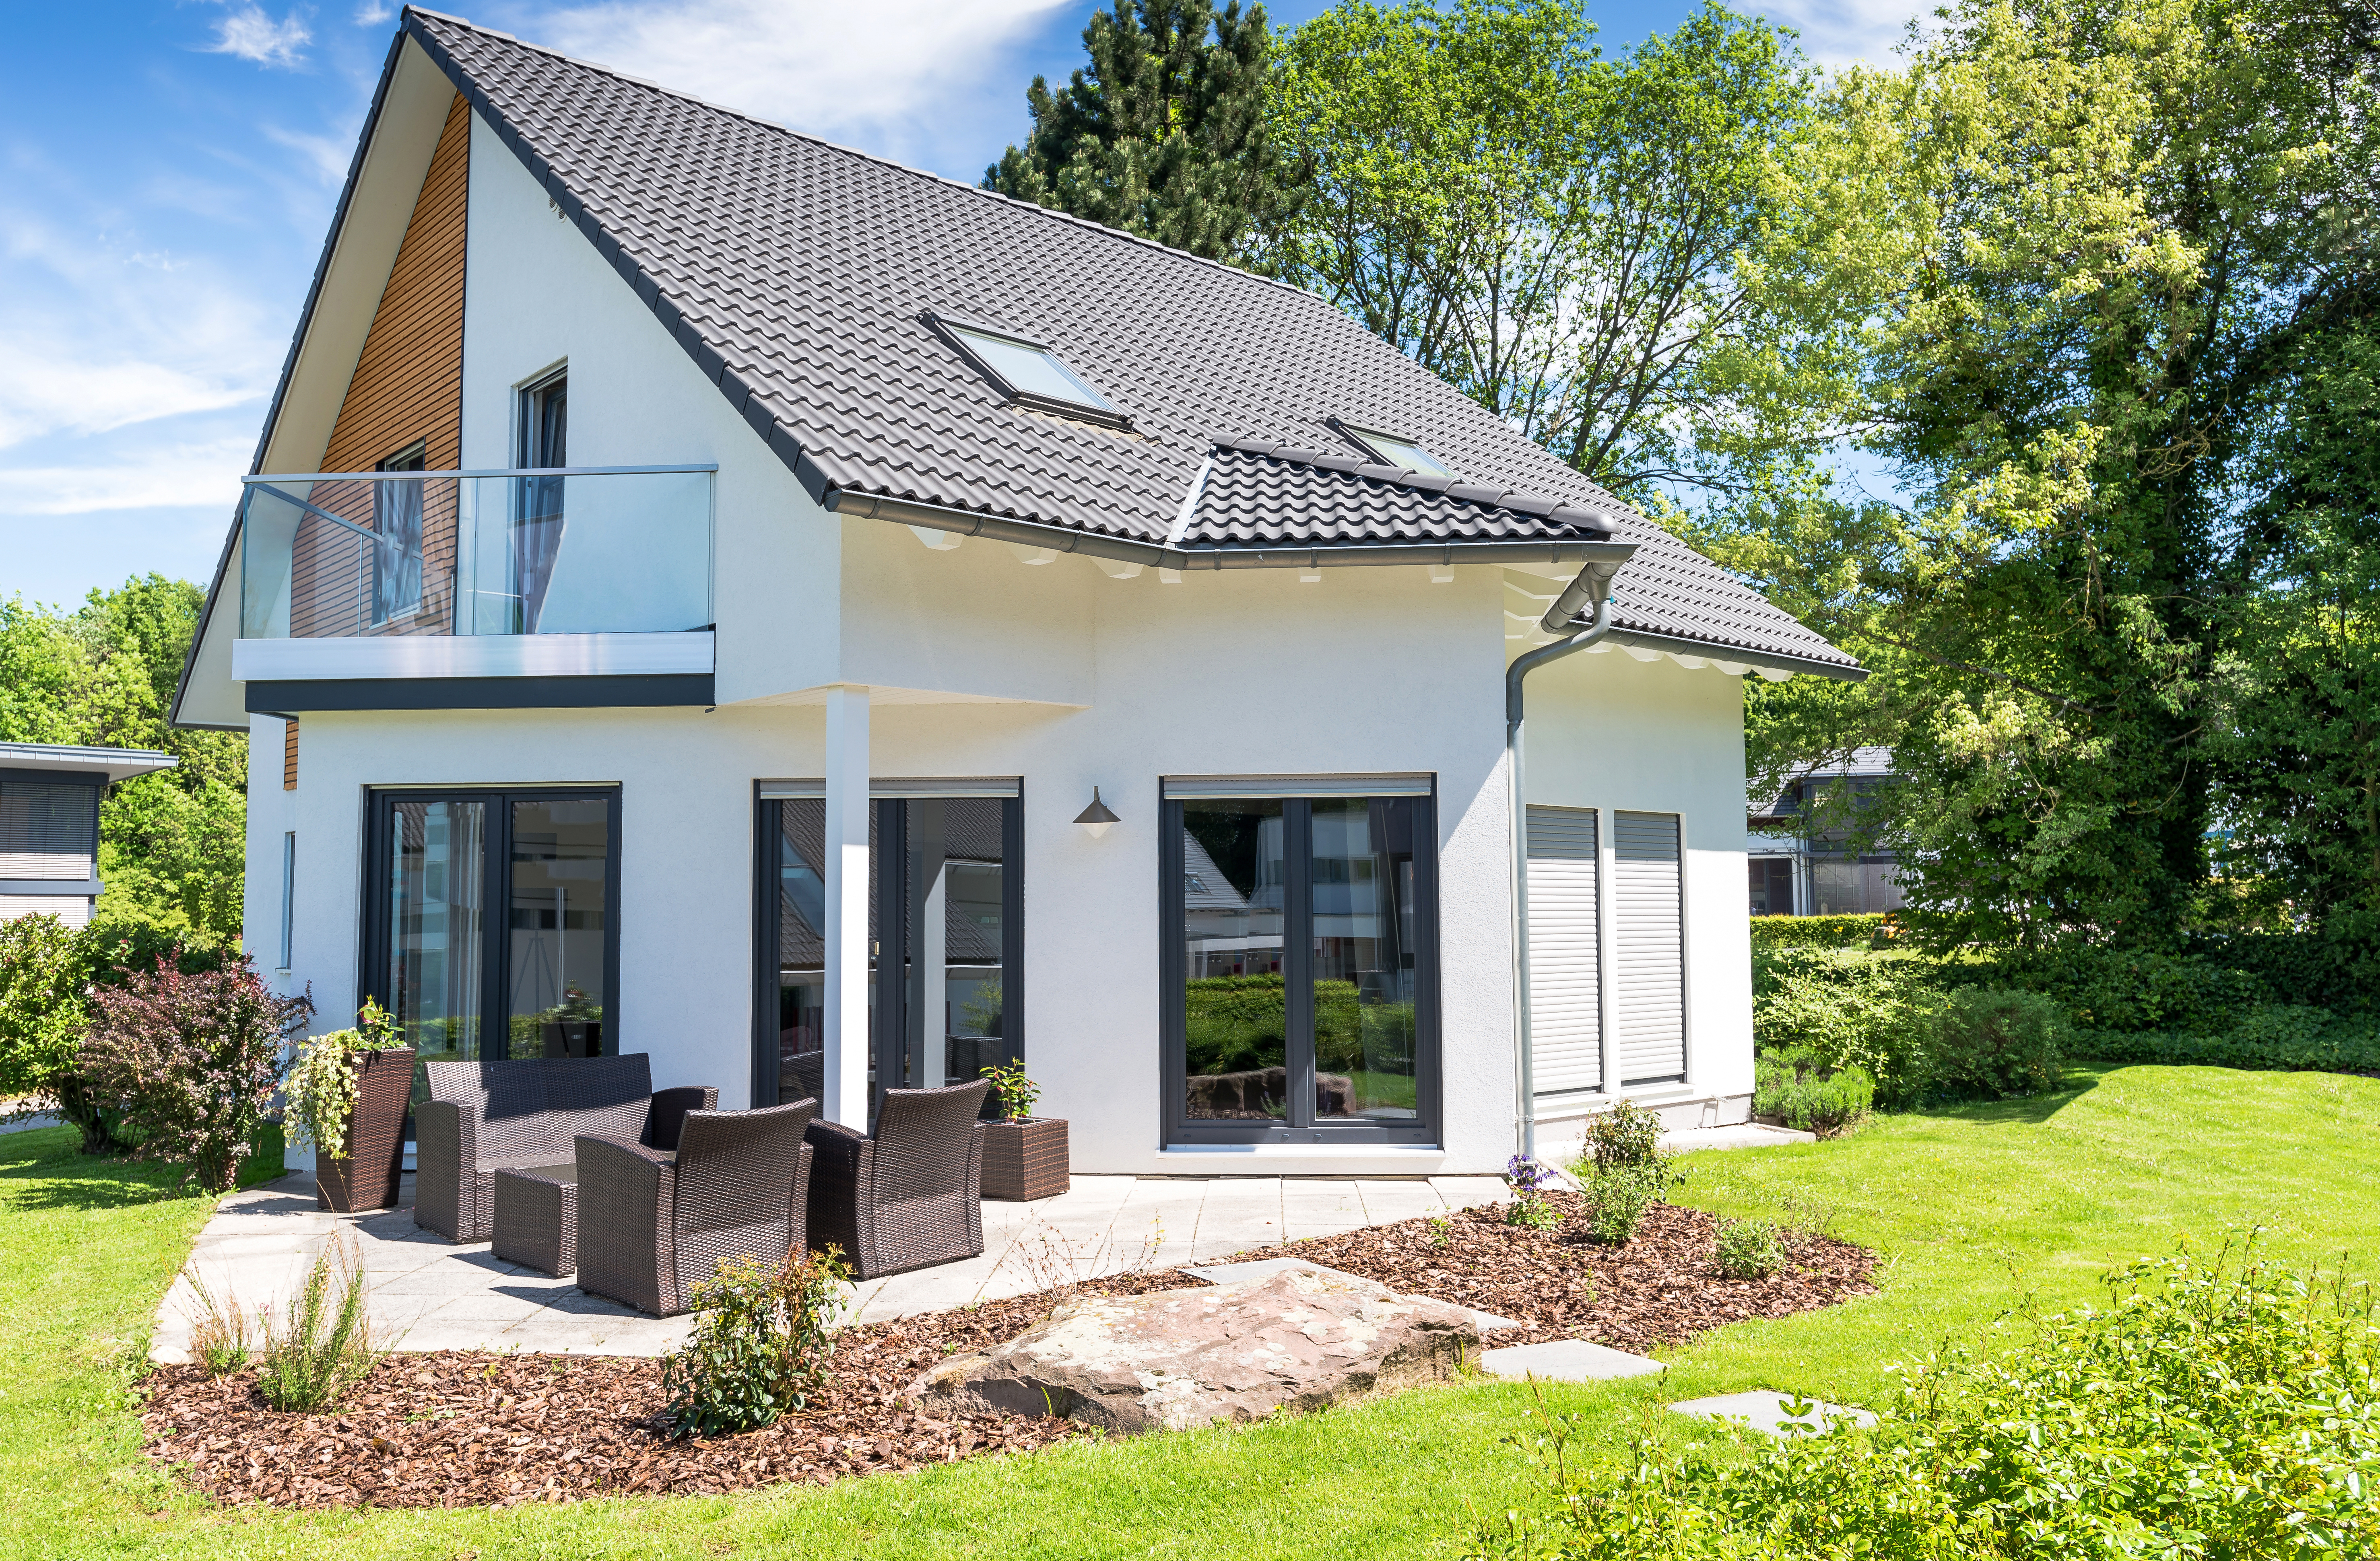 Residential - New Build